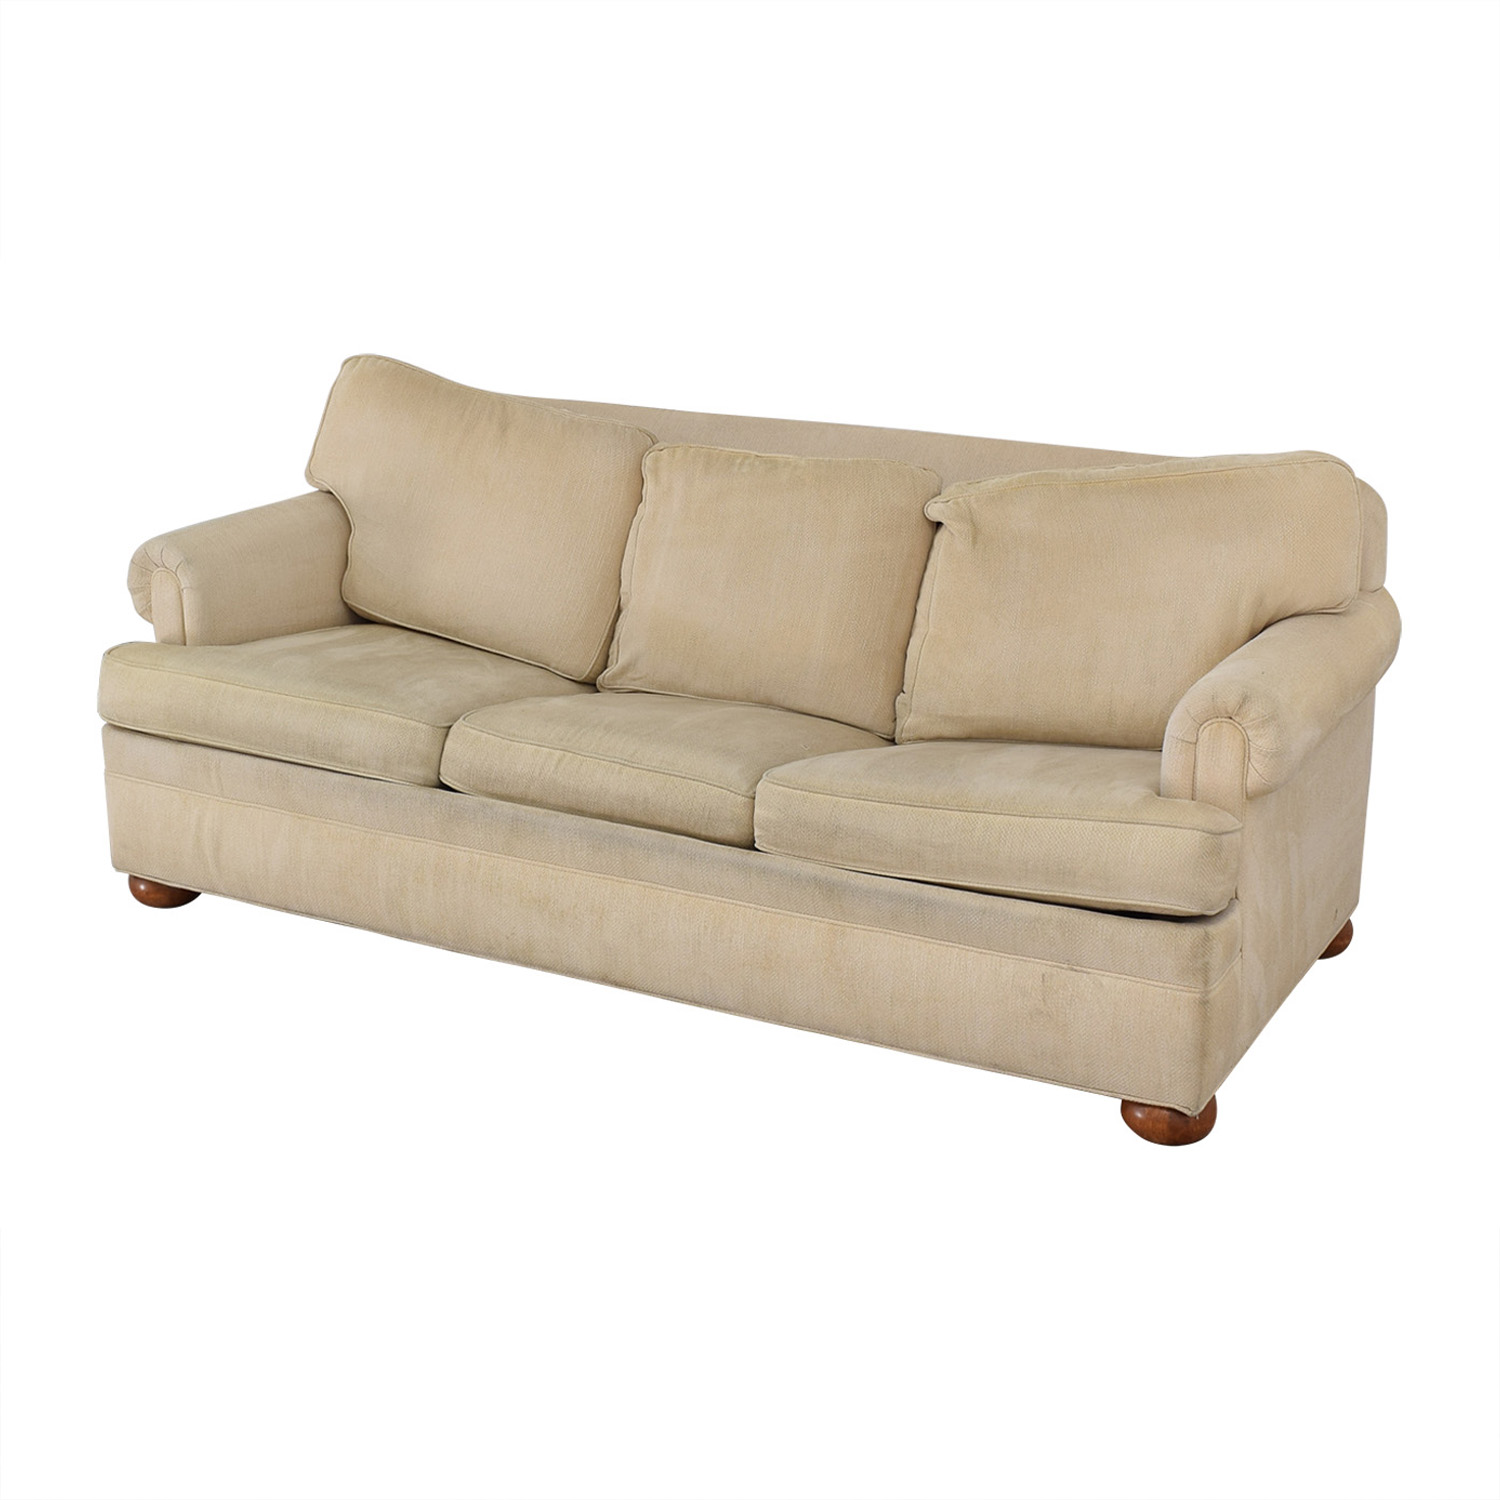 Ethan Allen Ethan Allen Off White Three-Cushion Queen Convertible Sofa second hand